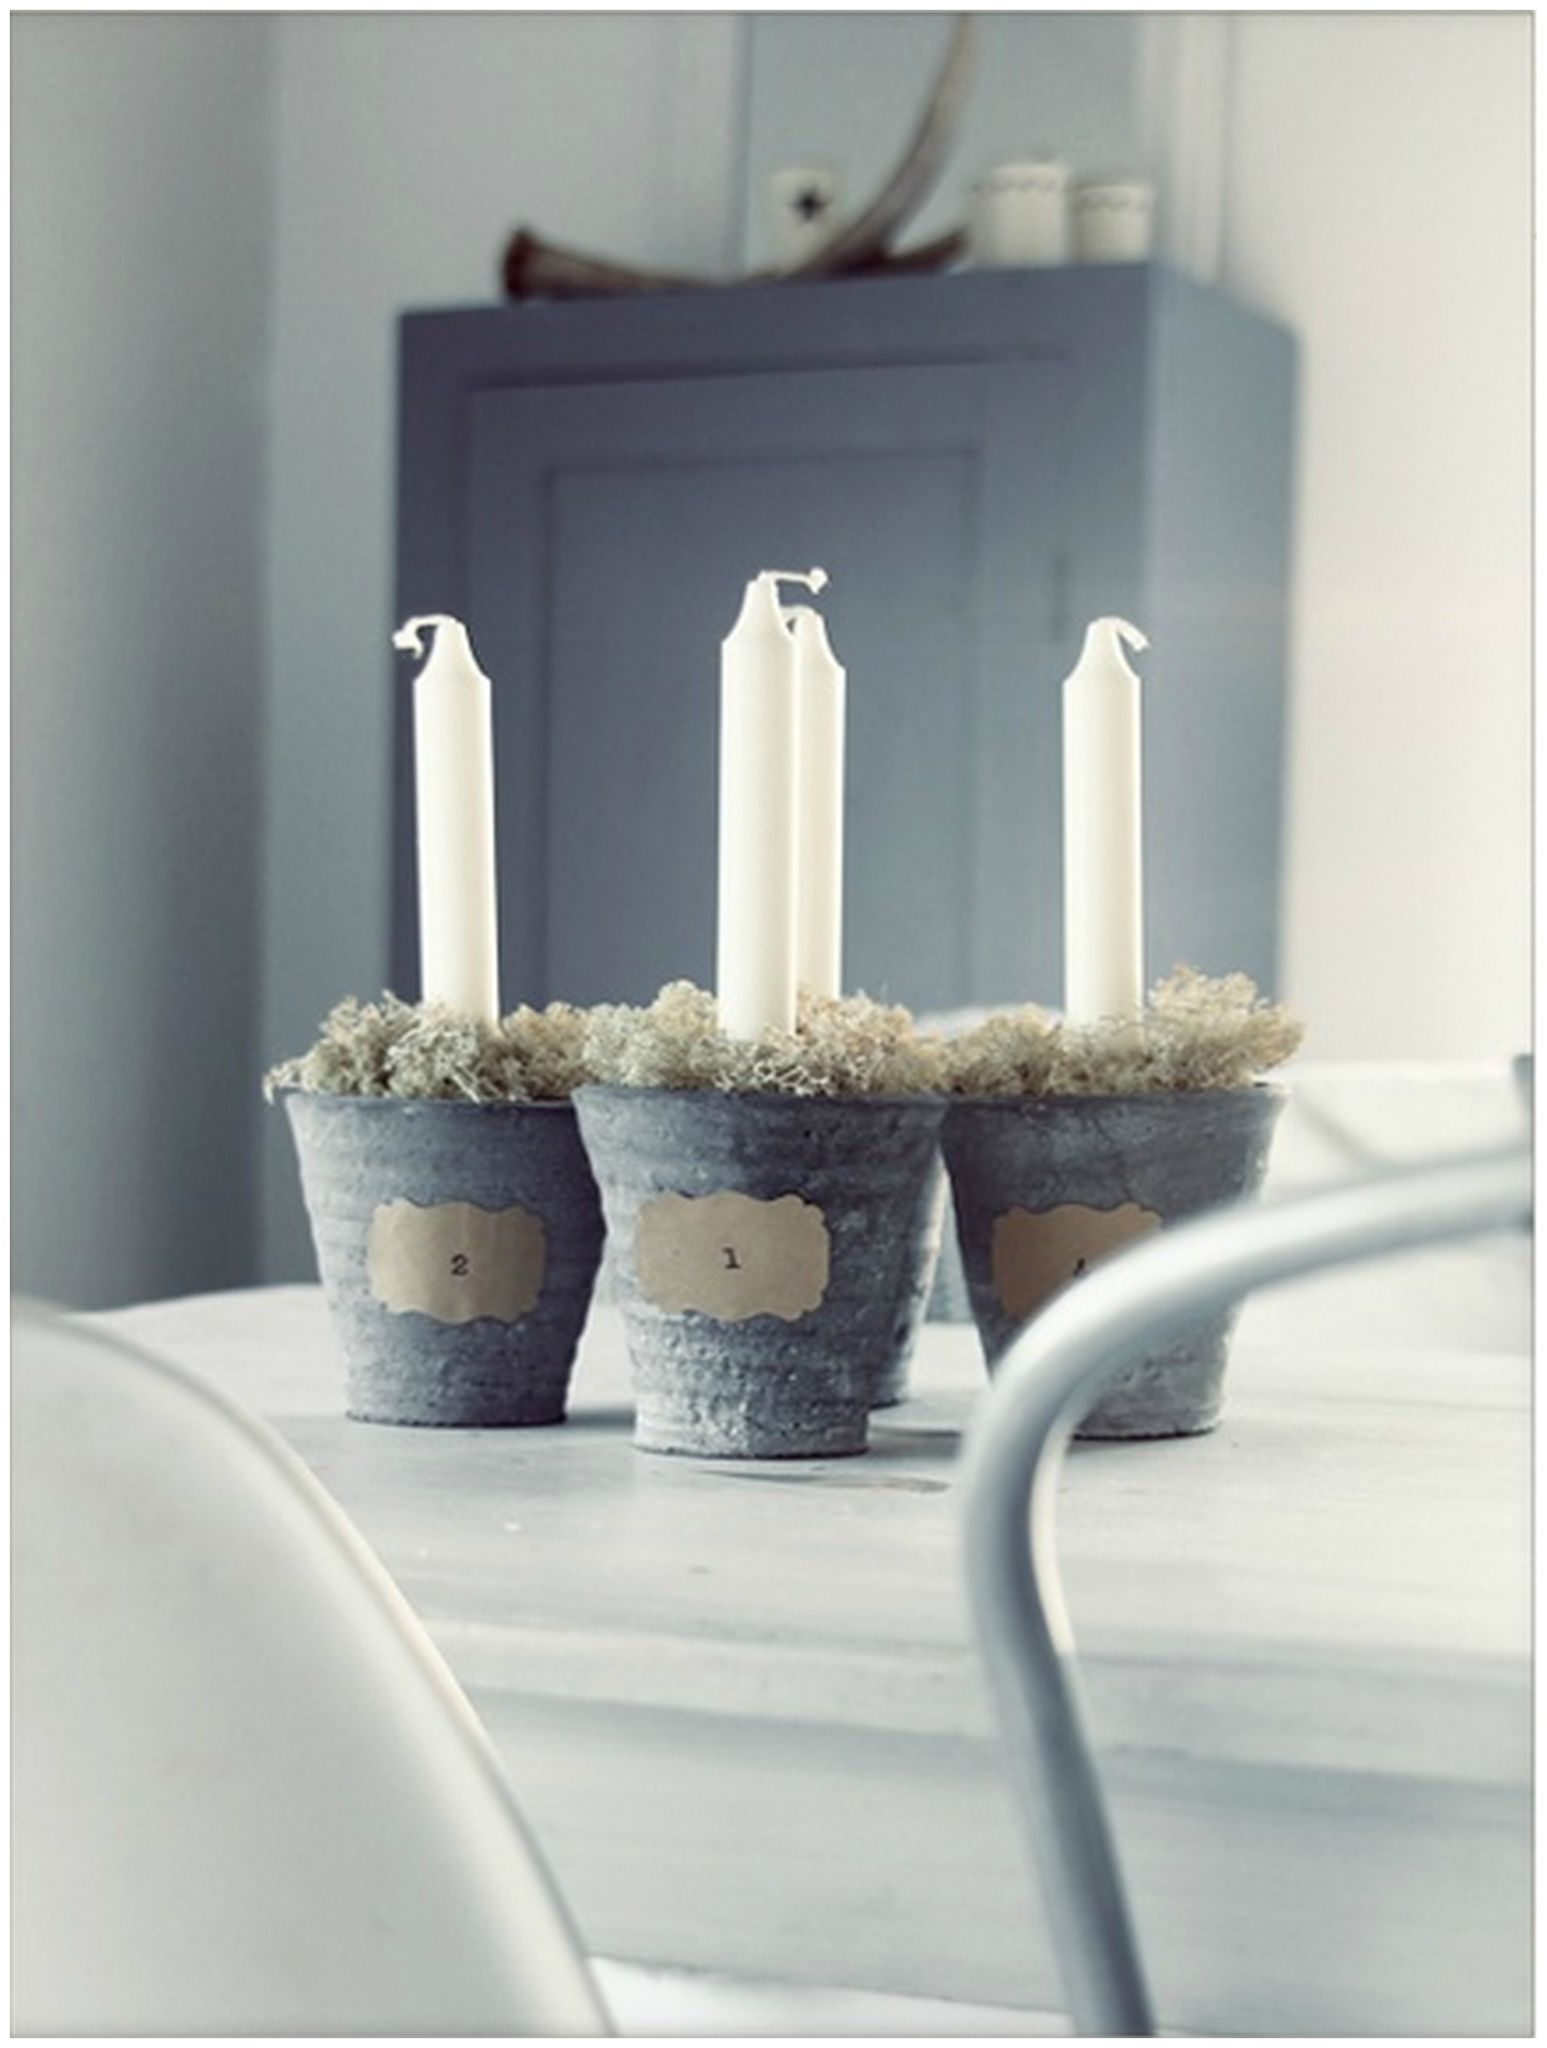 Bougie De L Avent Danoise avent 1 taper candles in little galvanized container buckets